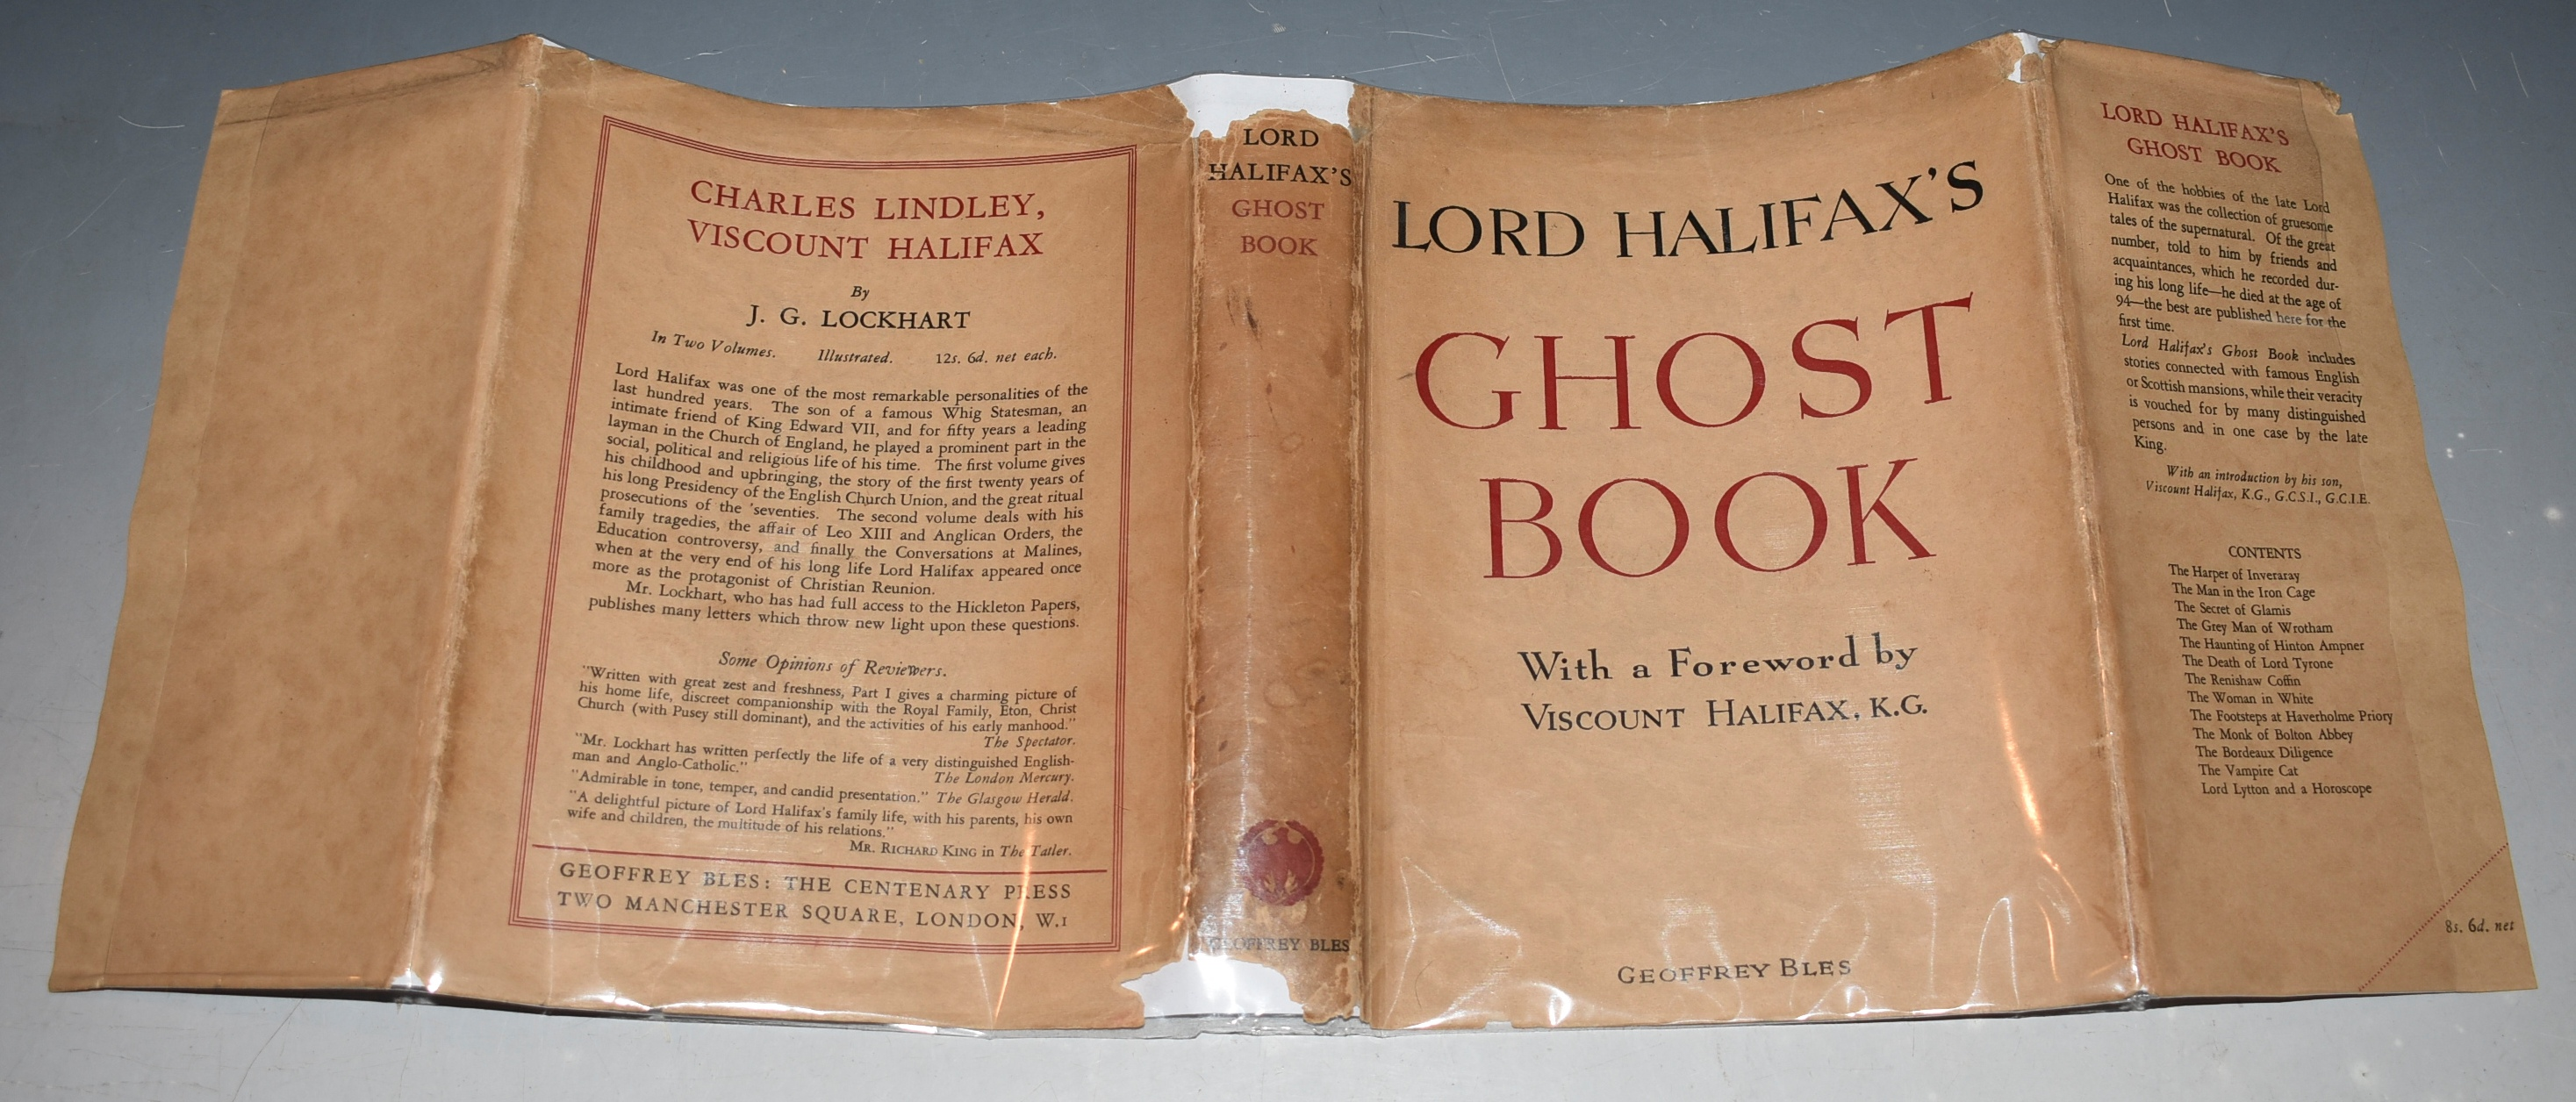 Image for Lord Halifax's Ghost Book A Collection of Stories of Haunted Houses, Apparitions and Supernatural Occurrences made by Charles Lindley, Viscount Halifax. With an Introduction...